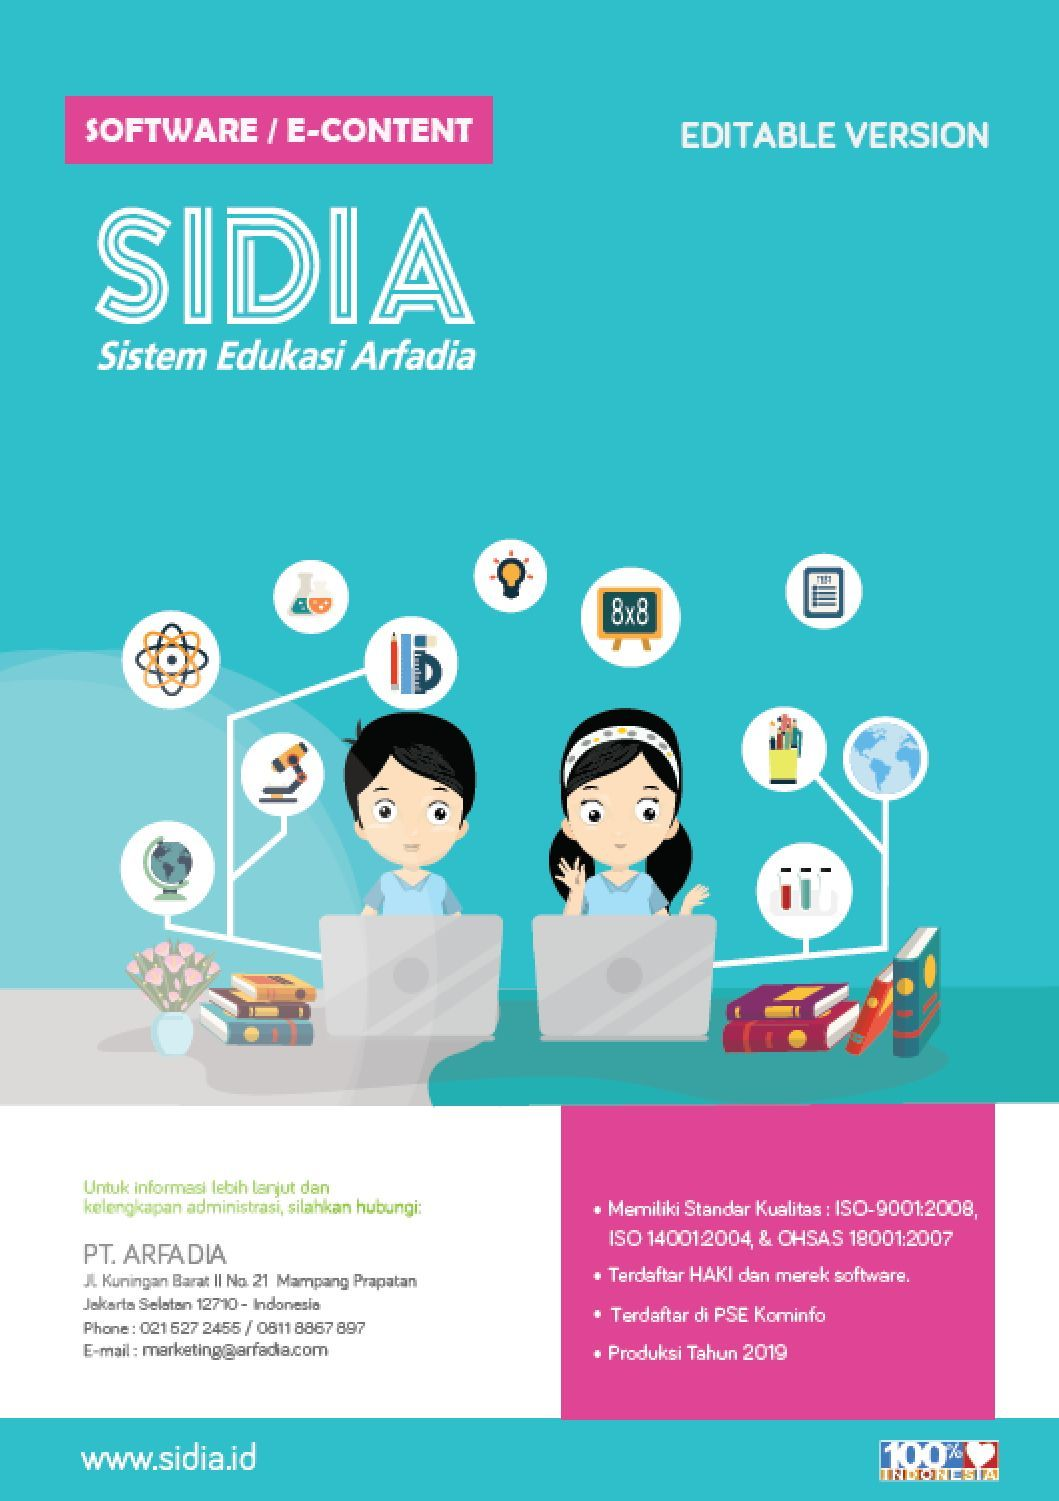 SIDIA Our New Product